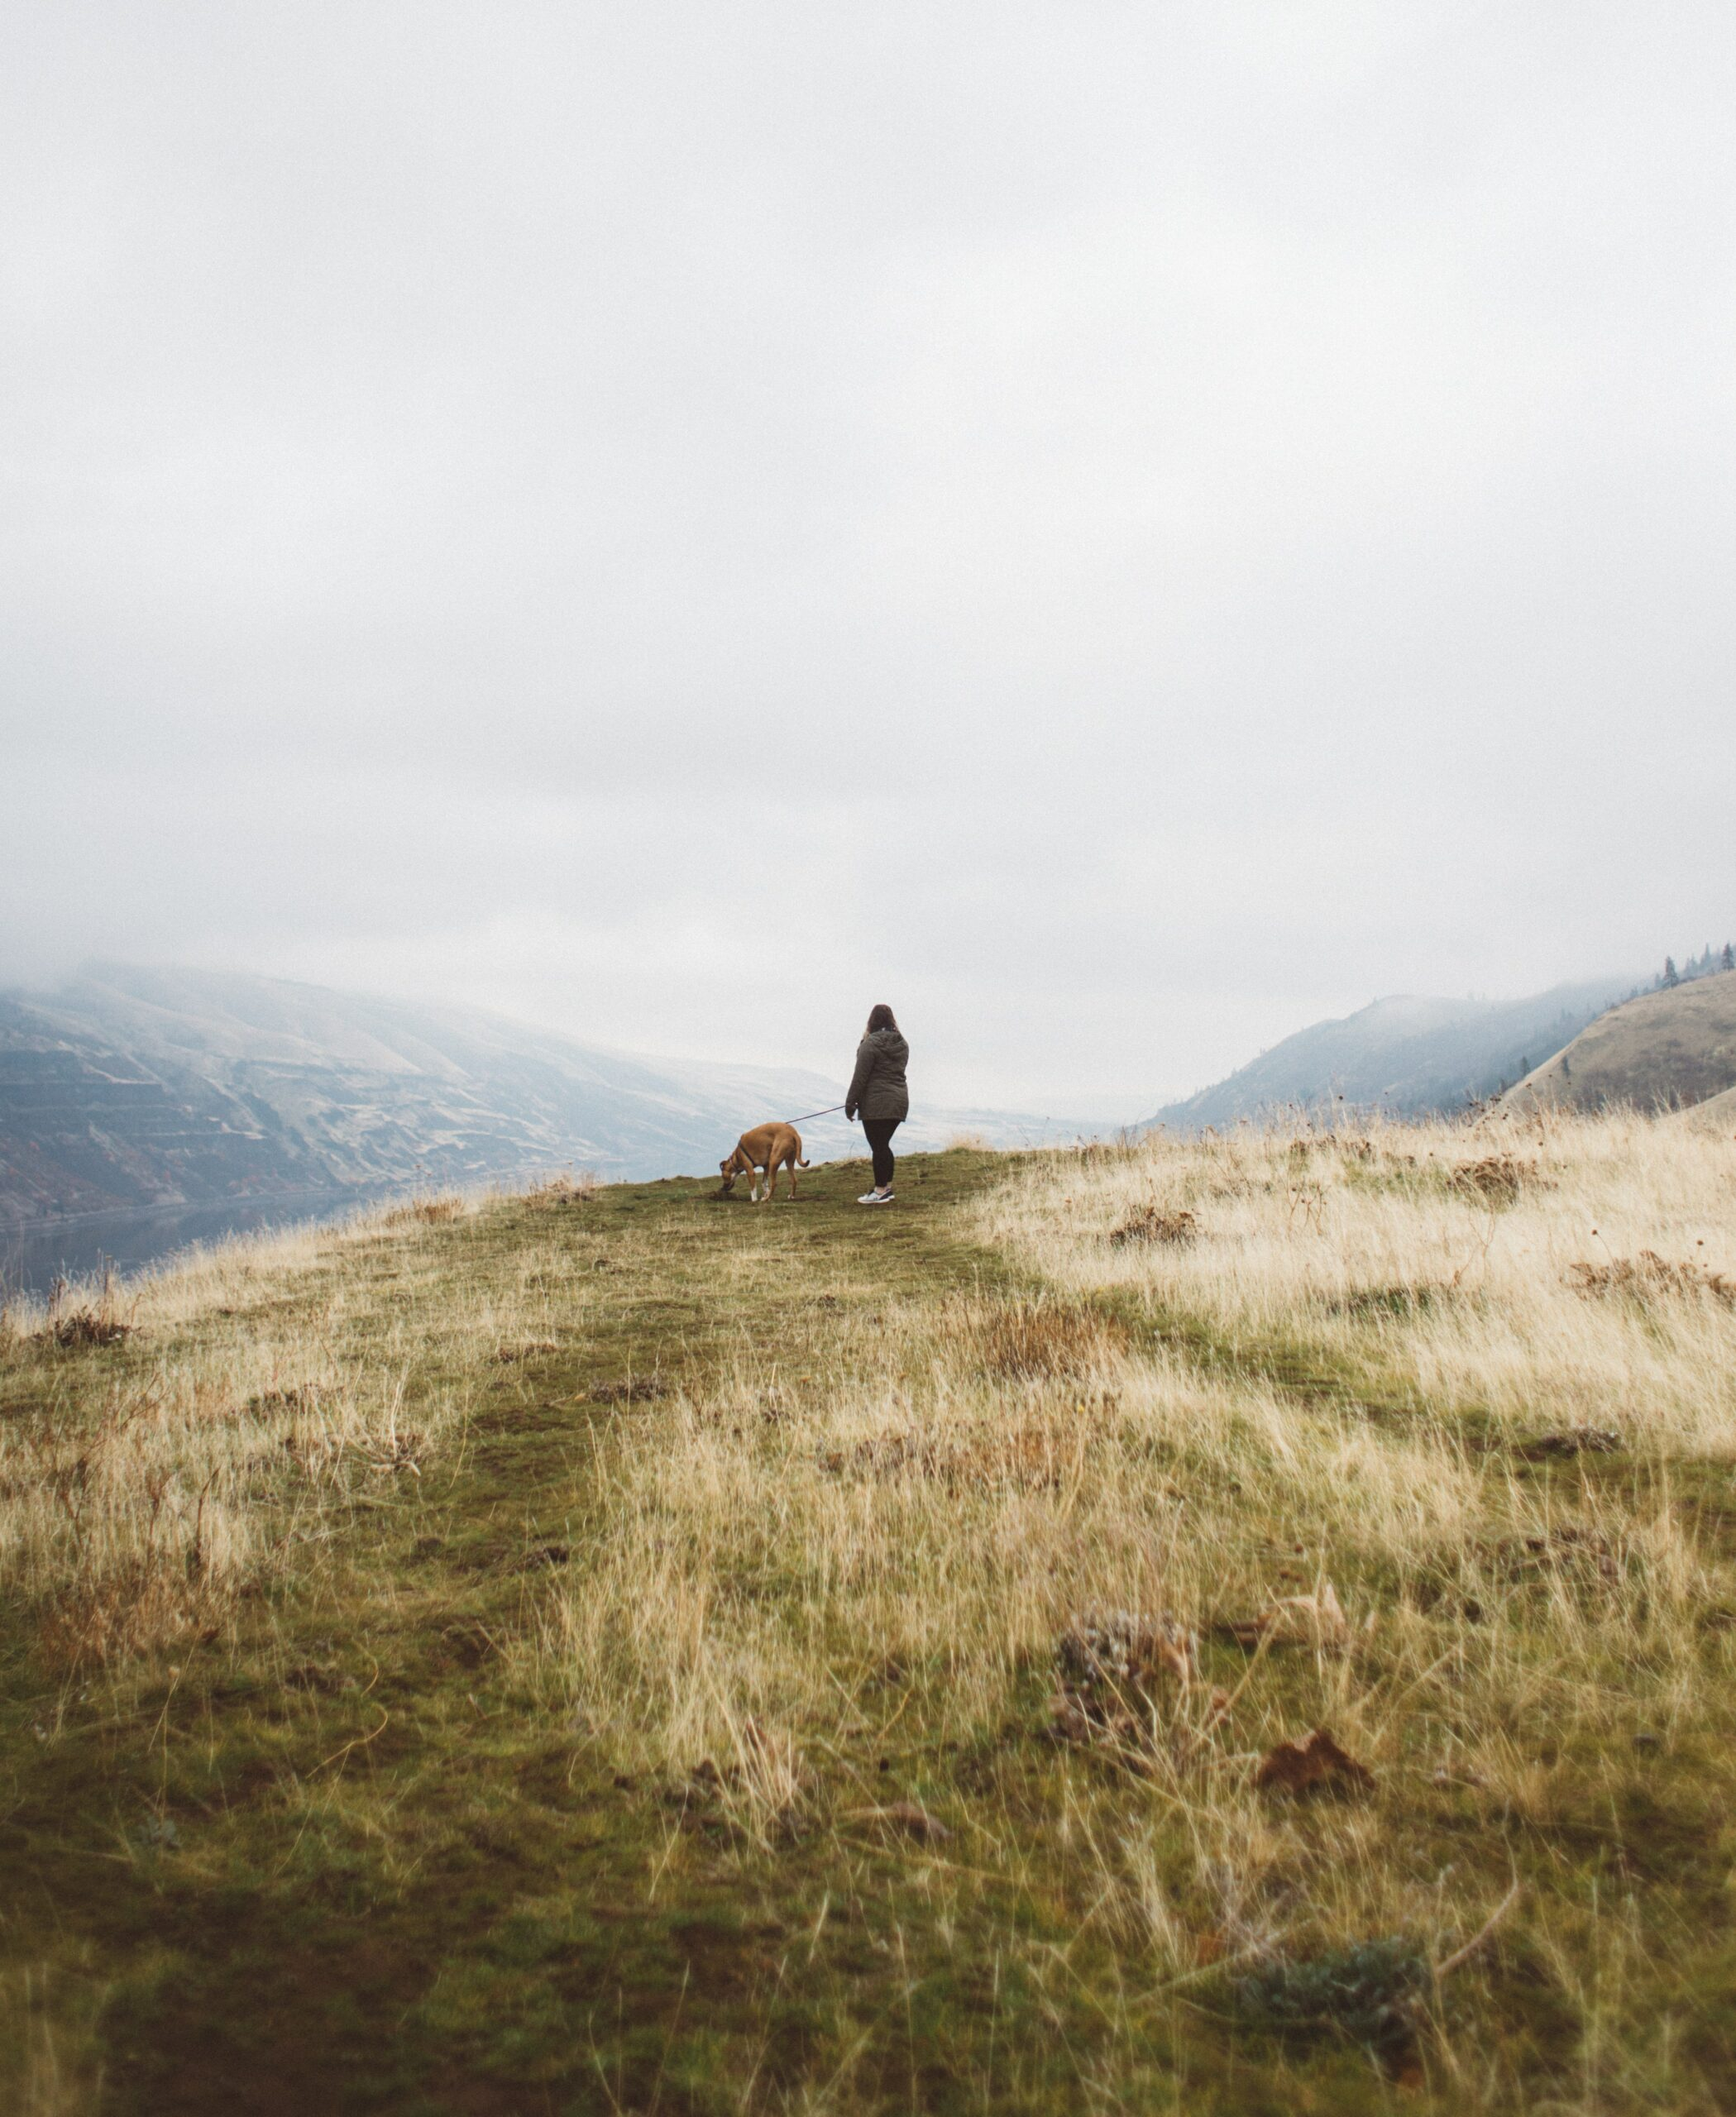 A woman walking her dog outdoors - personal practices